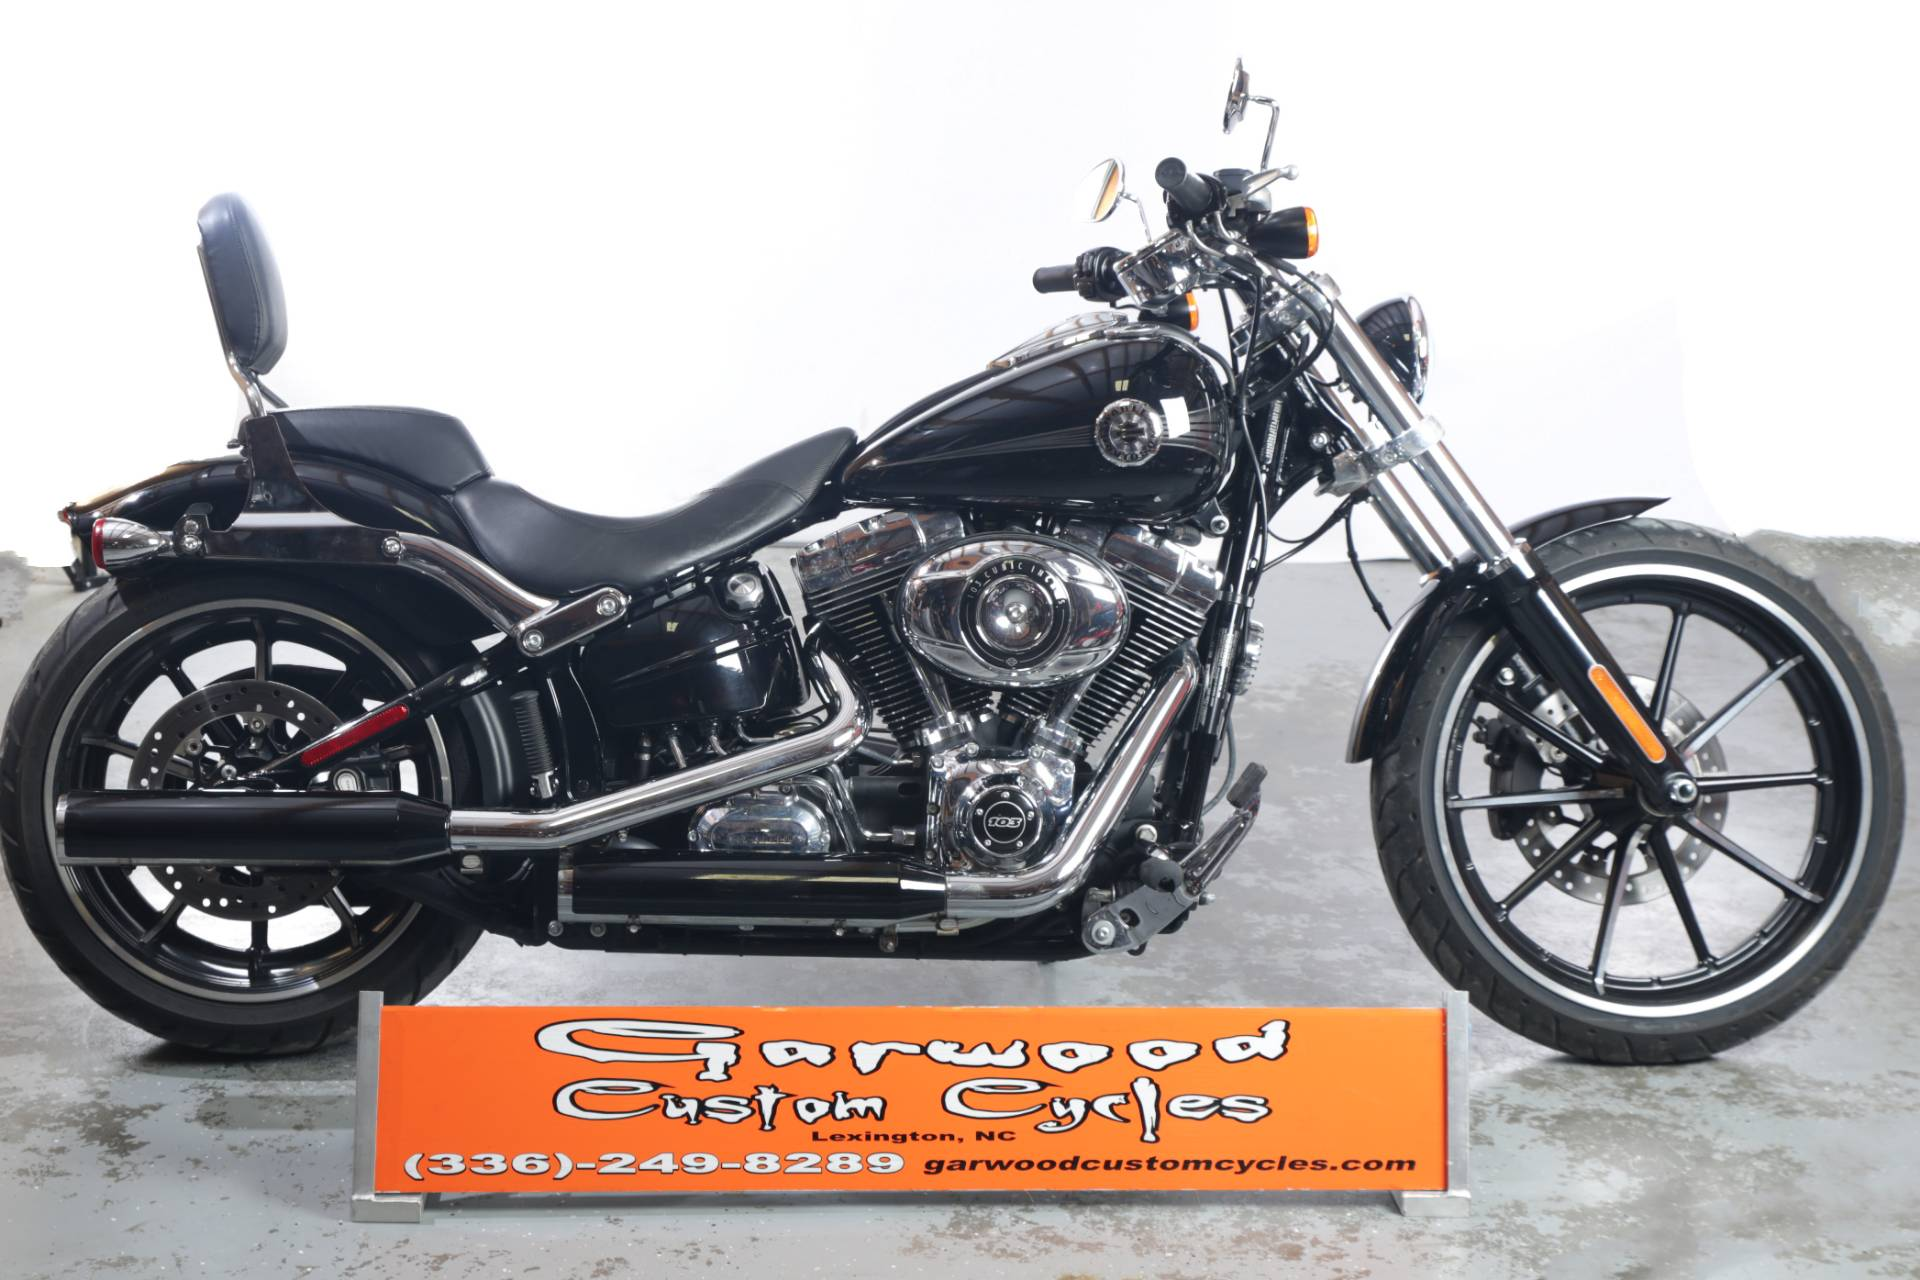 2015 Harley Davidson FXSB in Lexington, North Carolina - Photo 1